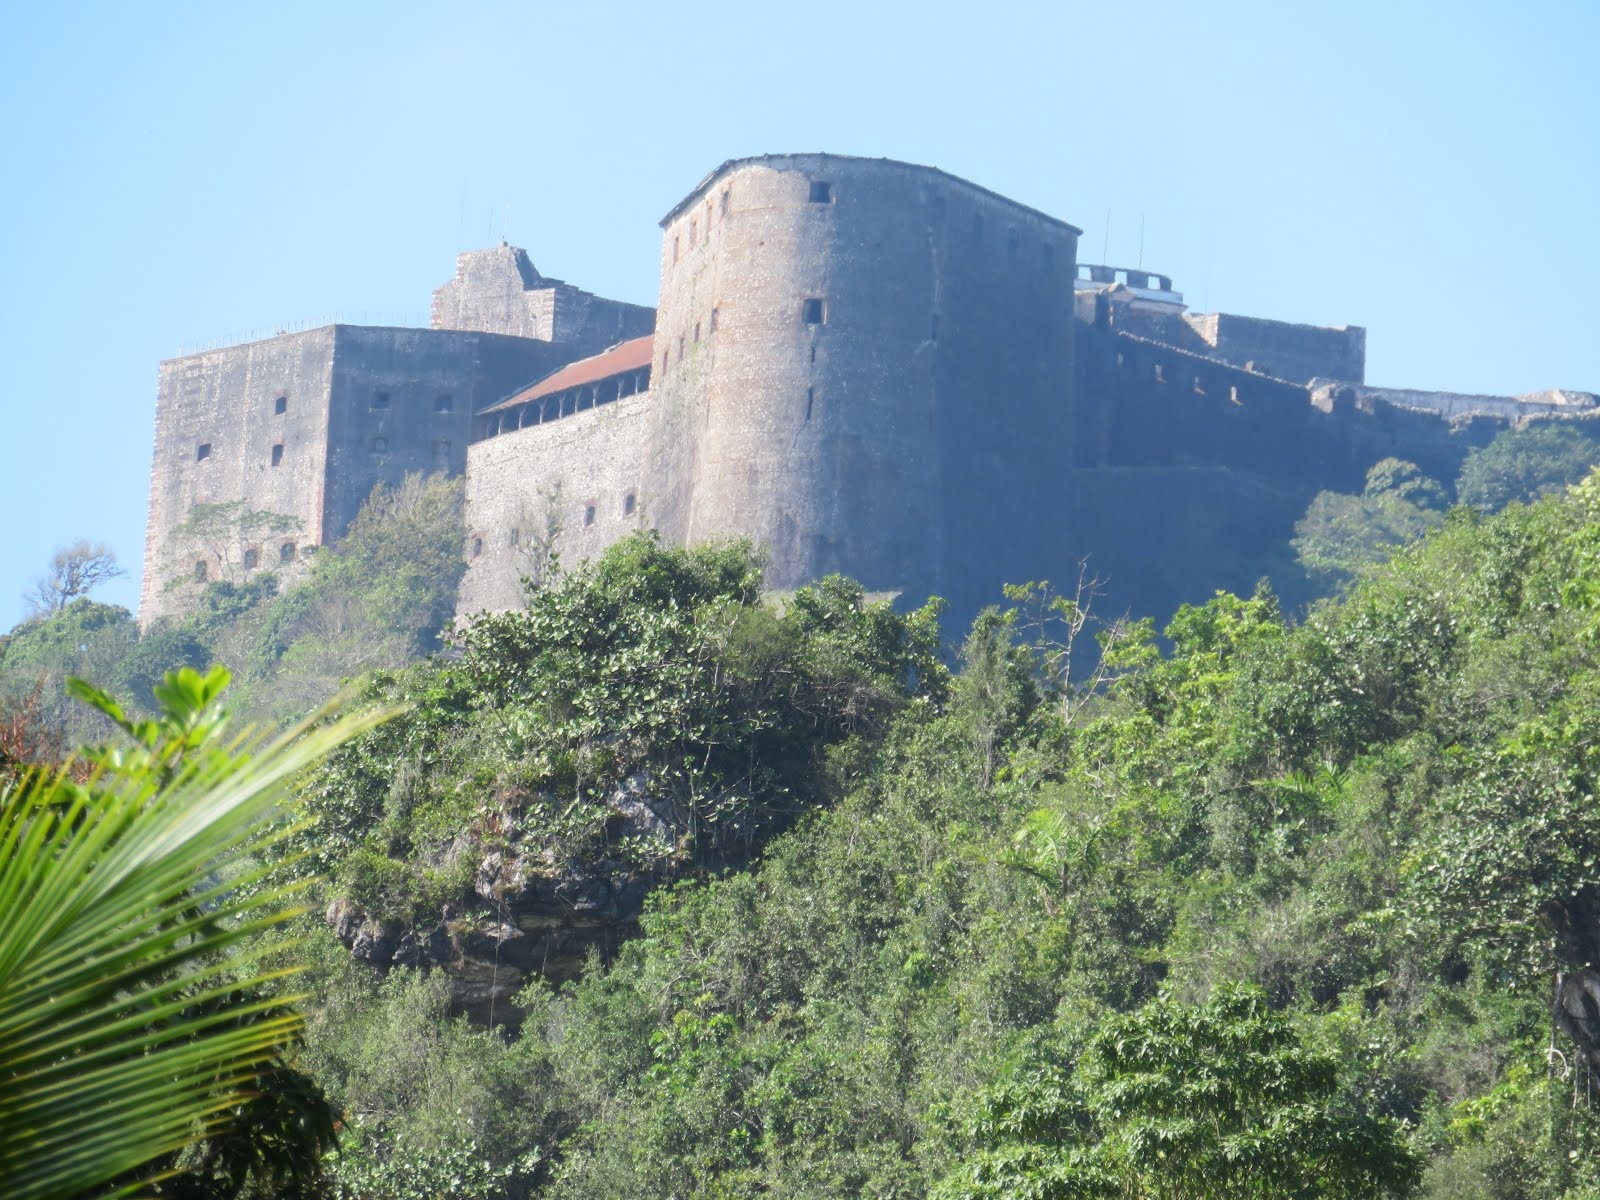 'The Citadel', The Massive Fortress of King Henri Christophe, Cap Haitien, Haiti